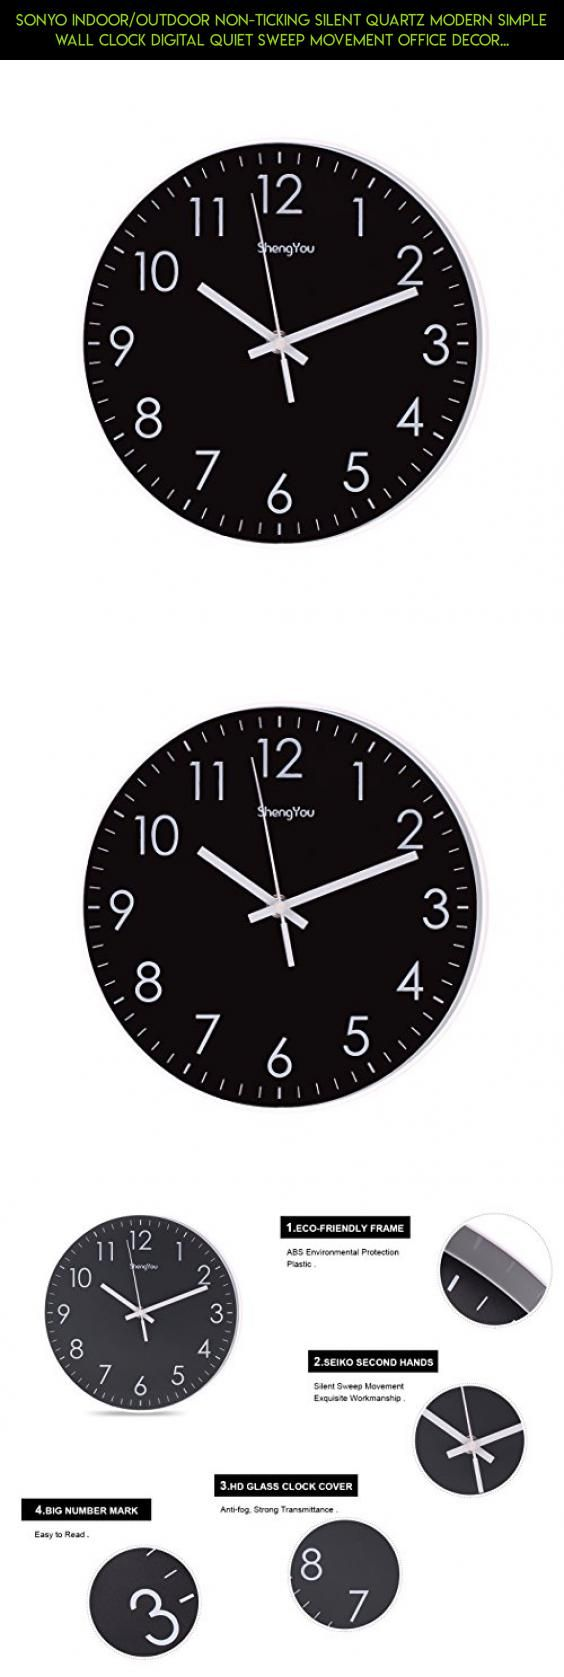 SonYo Indoor/Outdoor Non-Ticking Silent Quartz Modern Simple Wall Clock Digital Quiet Sweep Movement Office Decor 10 Inch(Black) #technology #decor #fpv #tech #outdoor #shopping #modern #racing #camera #drone #parts #kit #products #plans #gadgets